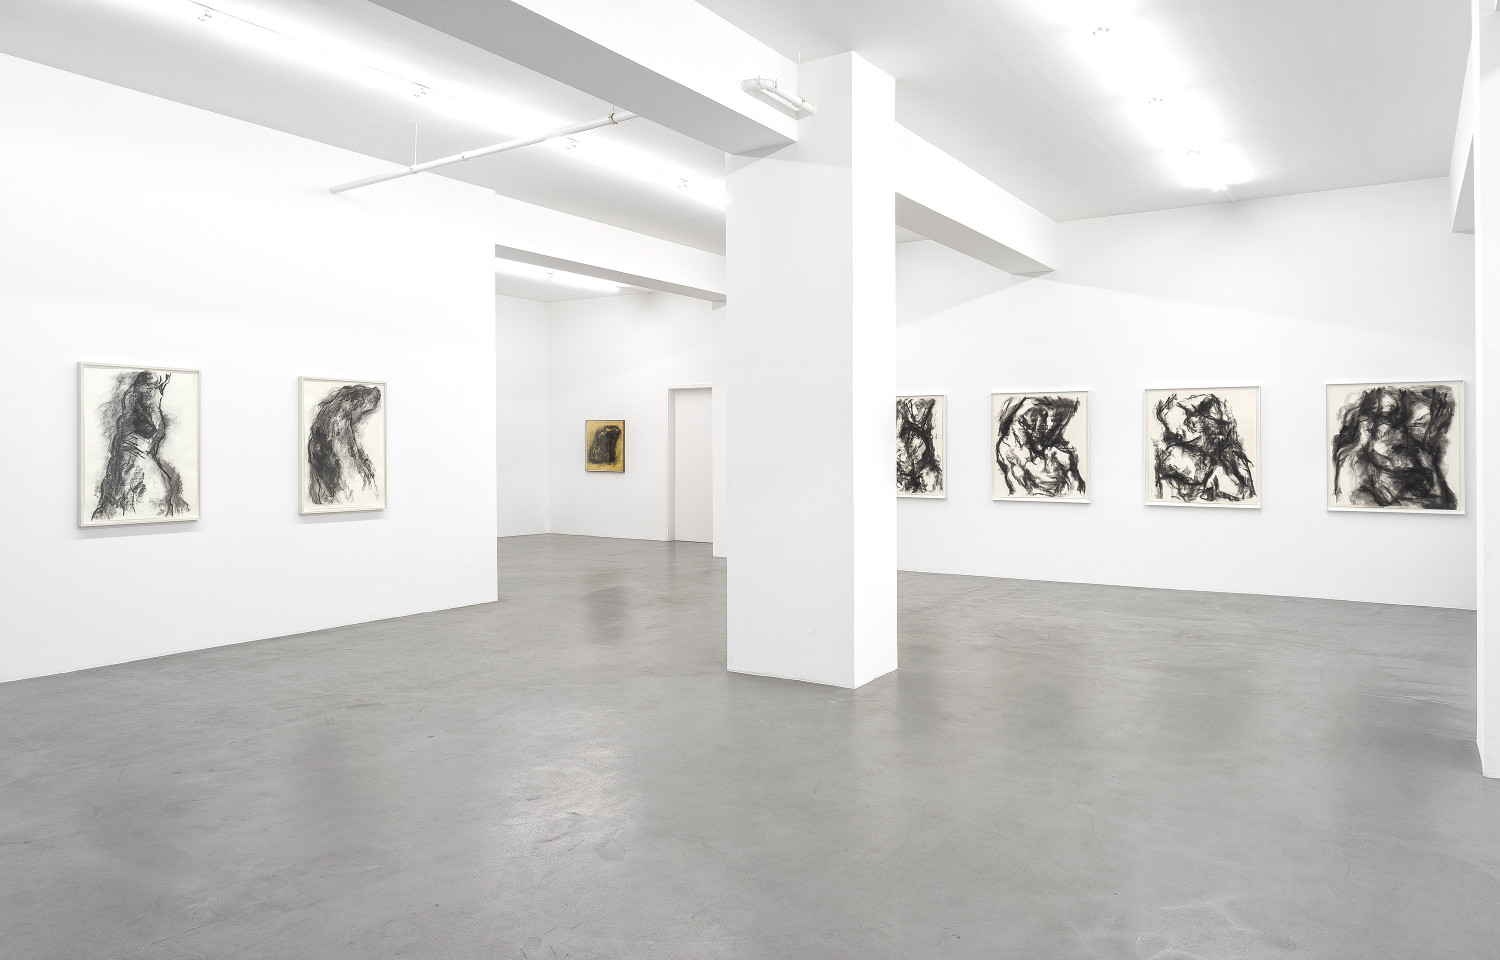 William Tucker, 'William Tucker - Charcoal Drawings', Installation view, Buchmann Galerie